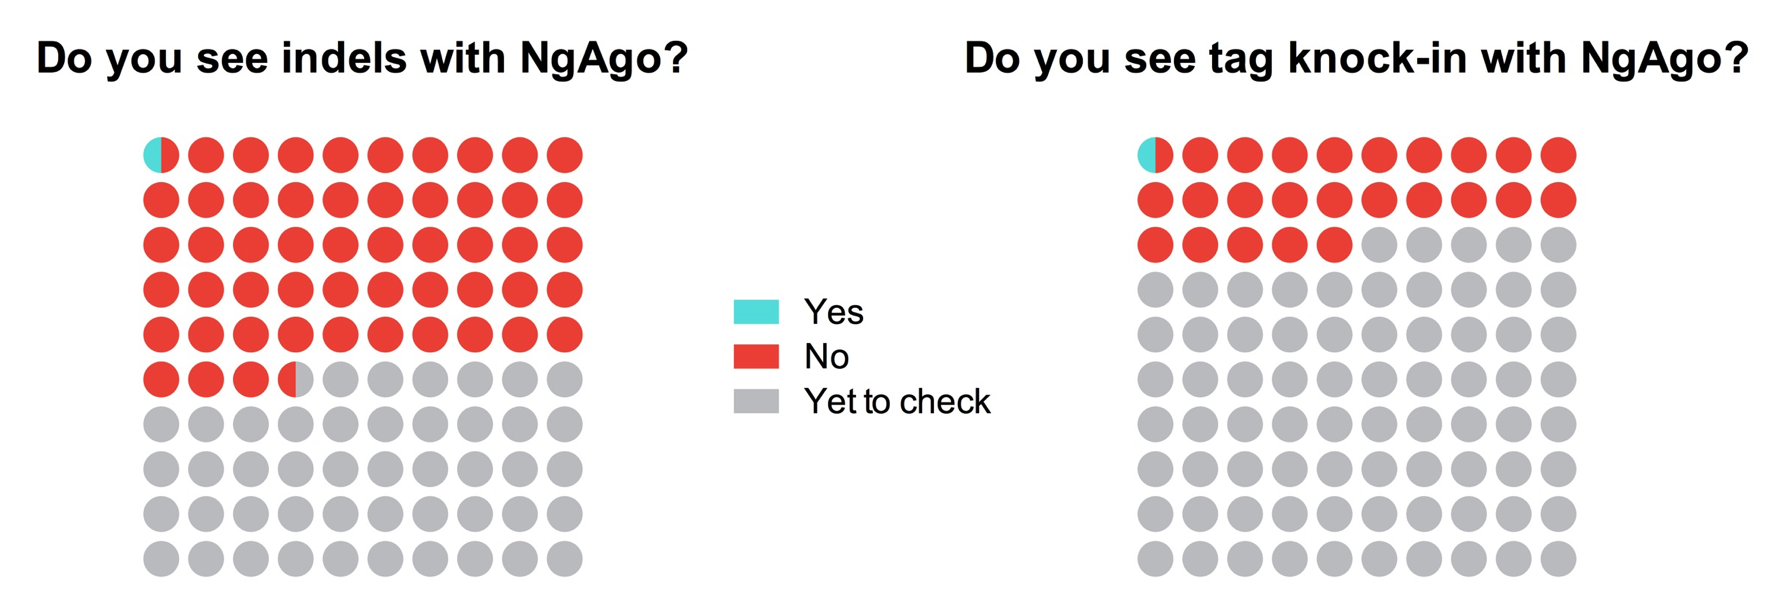 NgAgo Survey Results